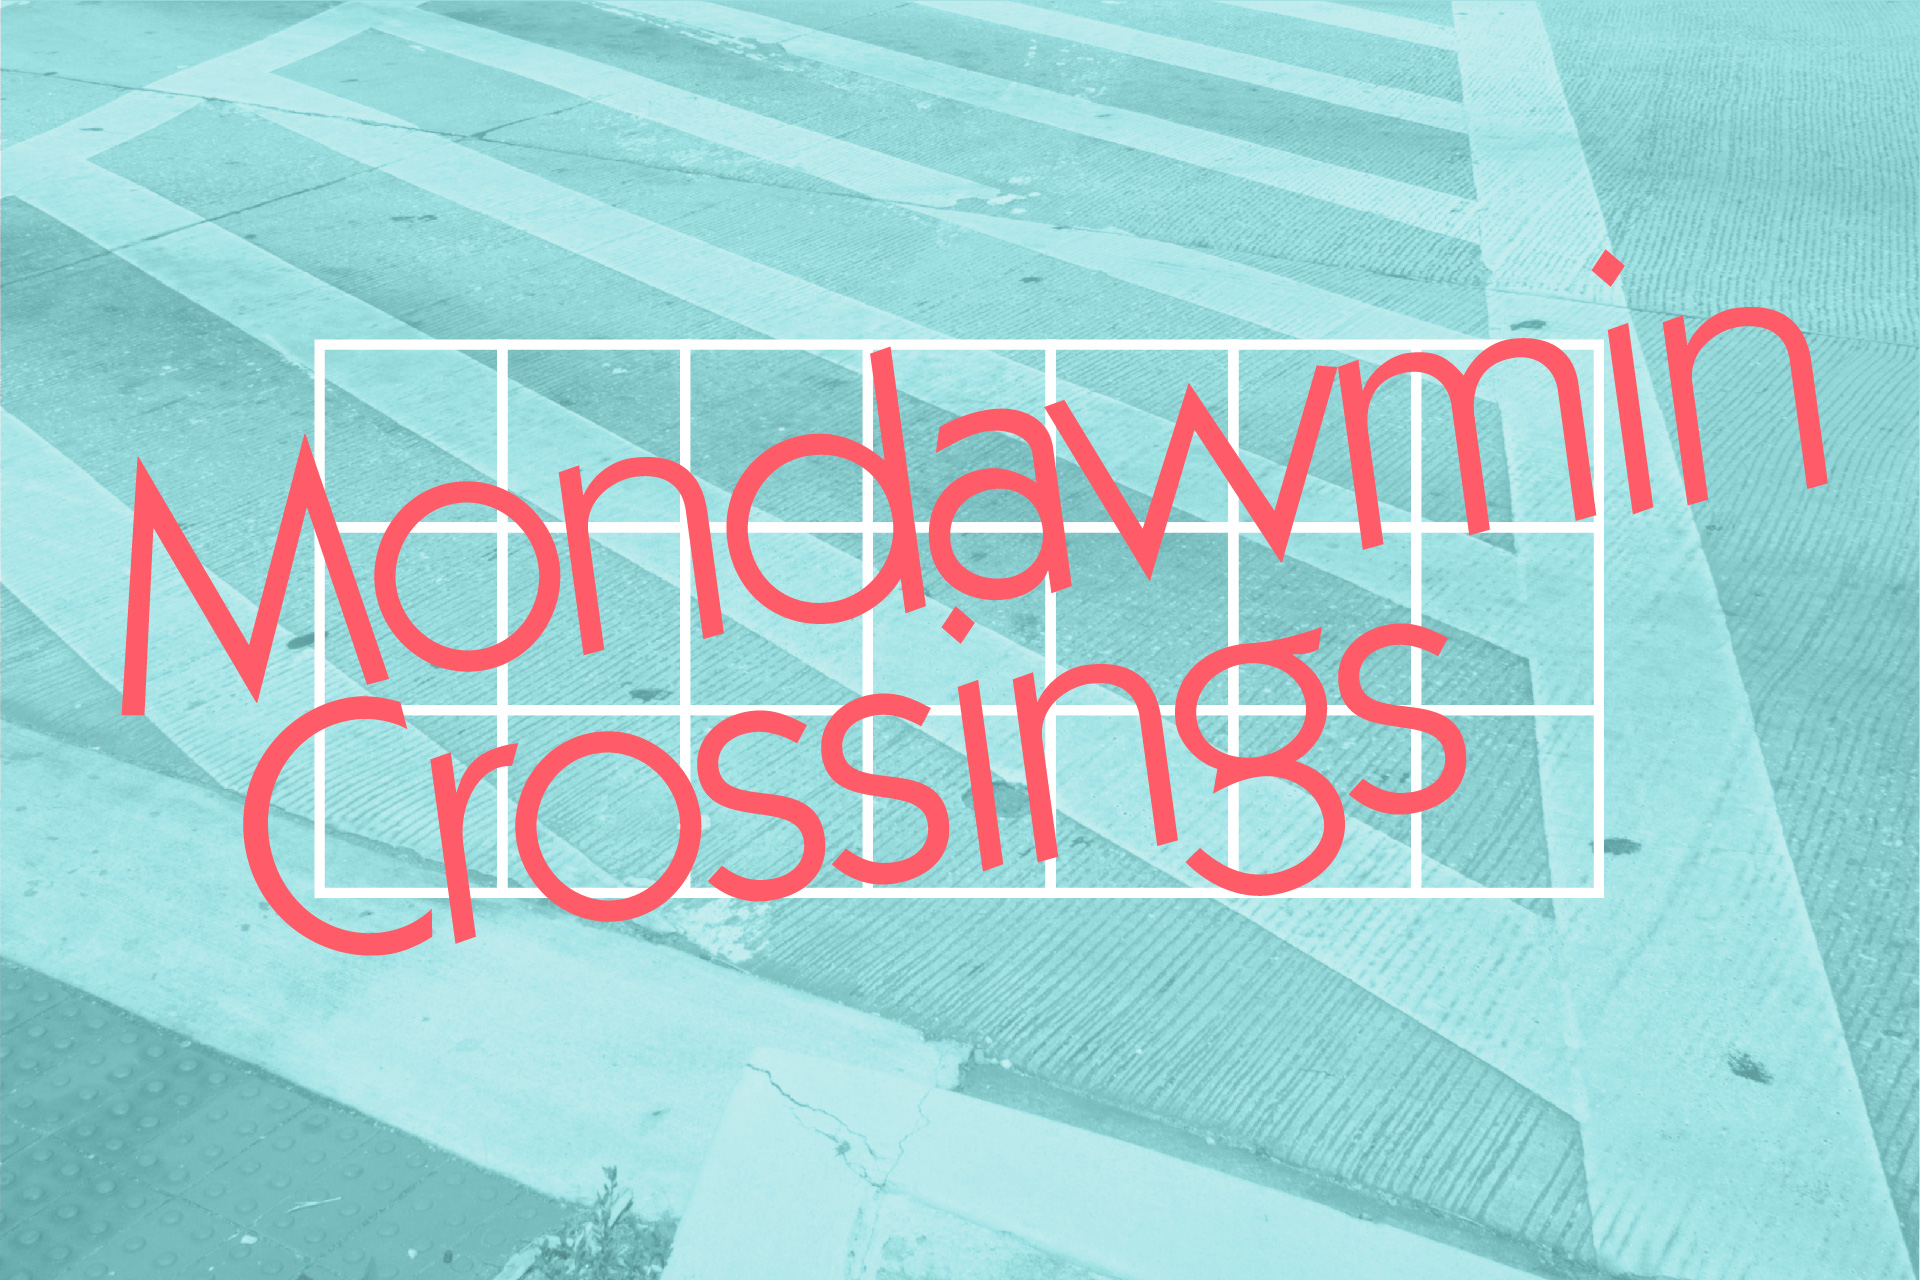 Mondawmin Crossings